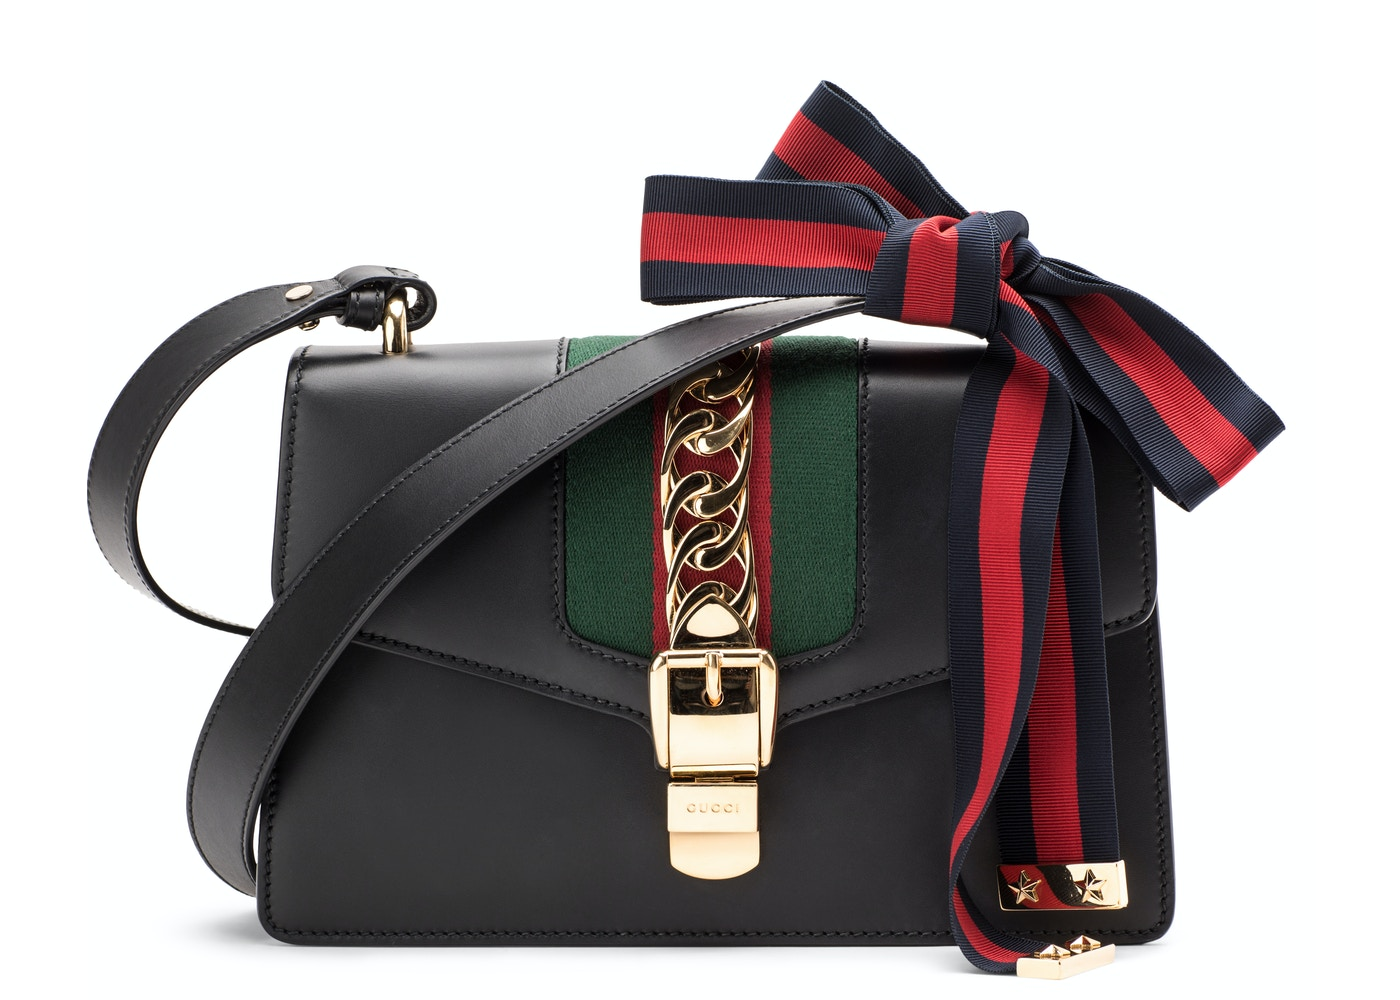 fdceeee696ae Buy & Sell Gucci Other Handbags - Average Sale Price